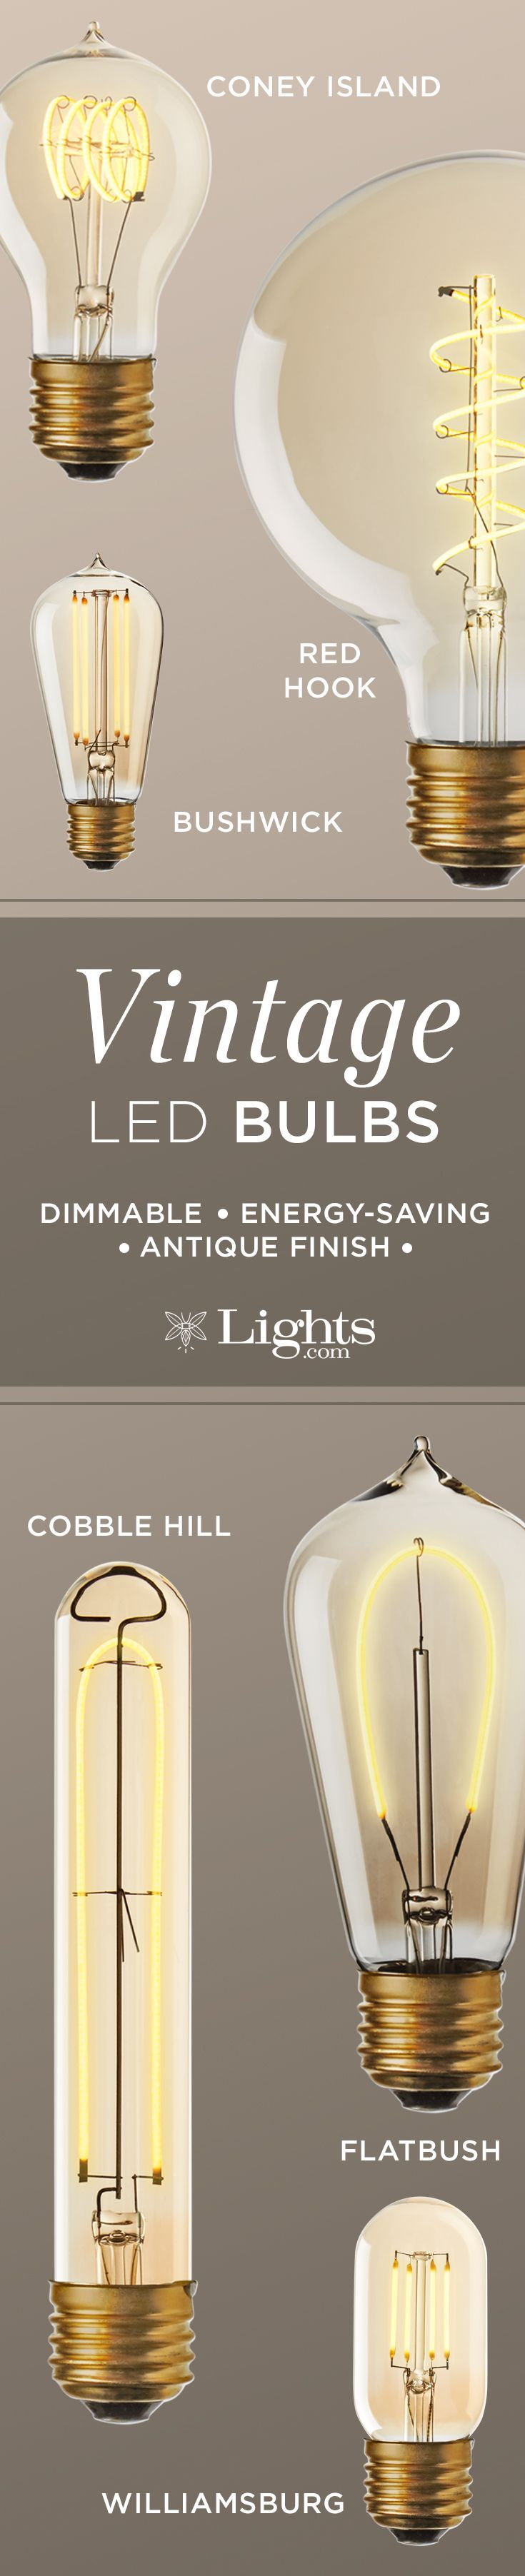 Stylish Energy Saving Tips | Turn-of-the-century Edison bulbs with modern LED technology. Get the vintage inspired look for your lighting while saving energy. Never change a bulb again!